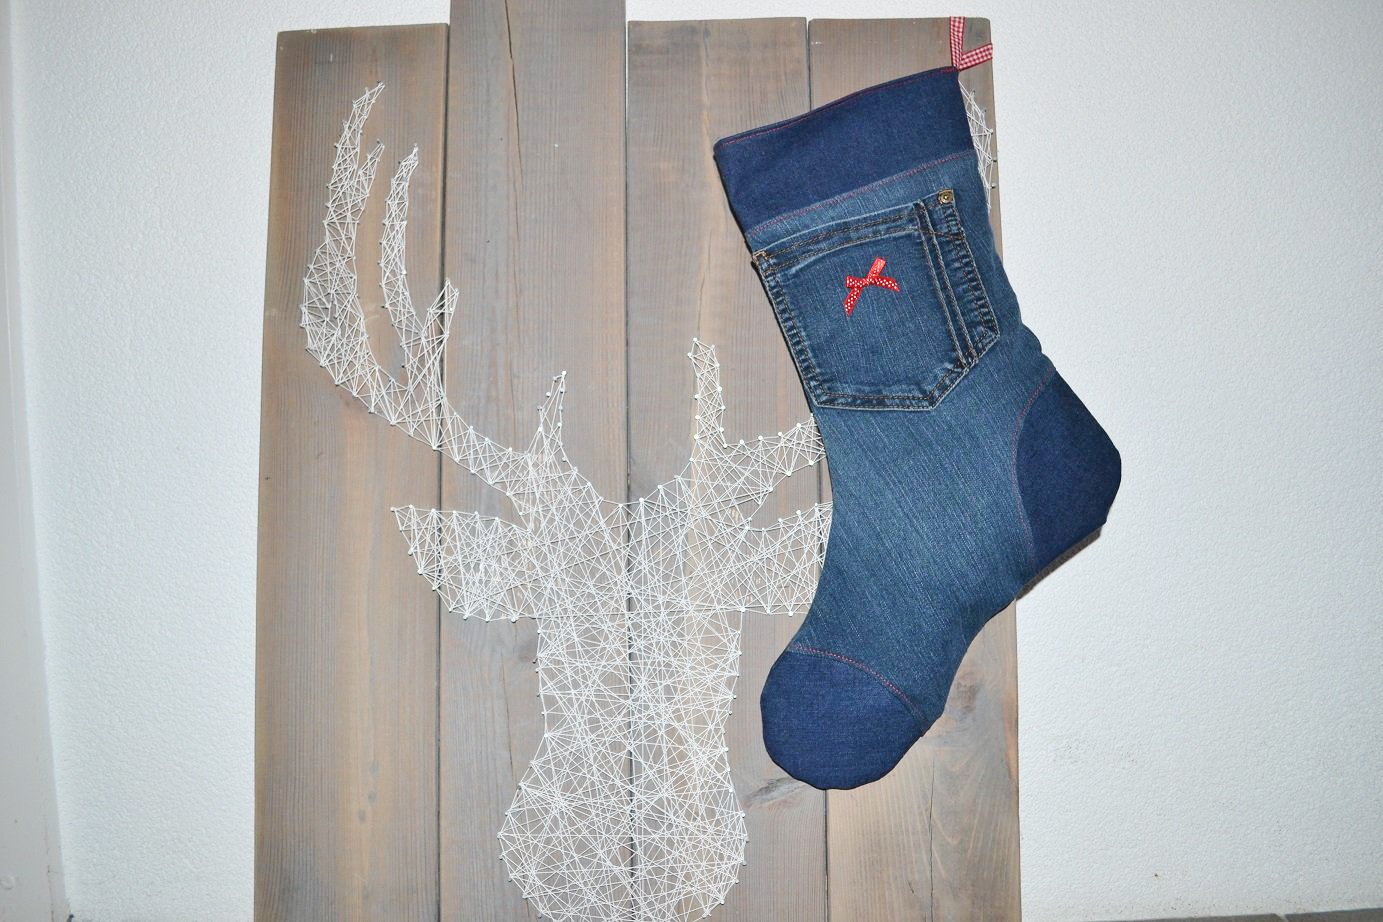 Upcycling project: Sewing Christmas stockings from fabric remnants